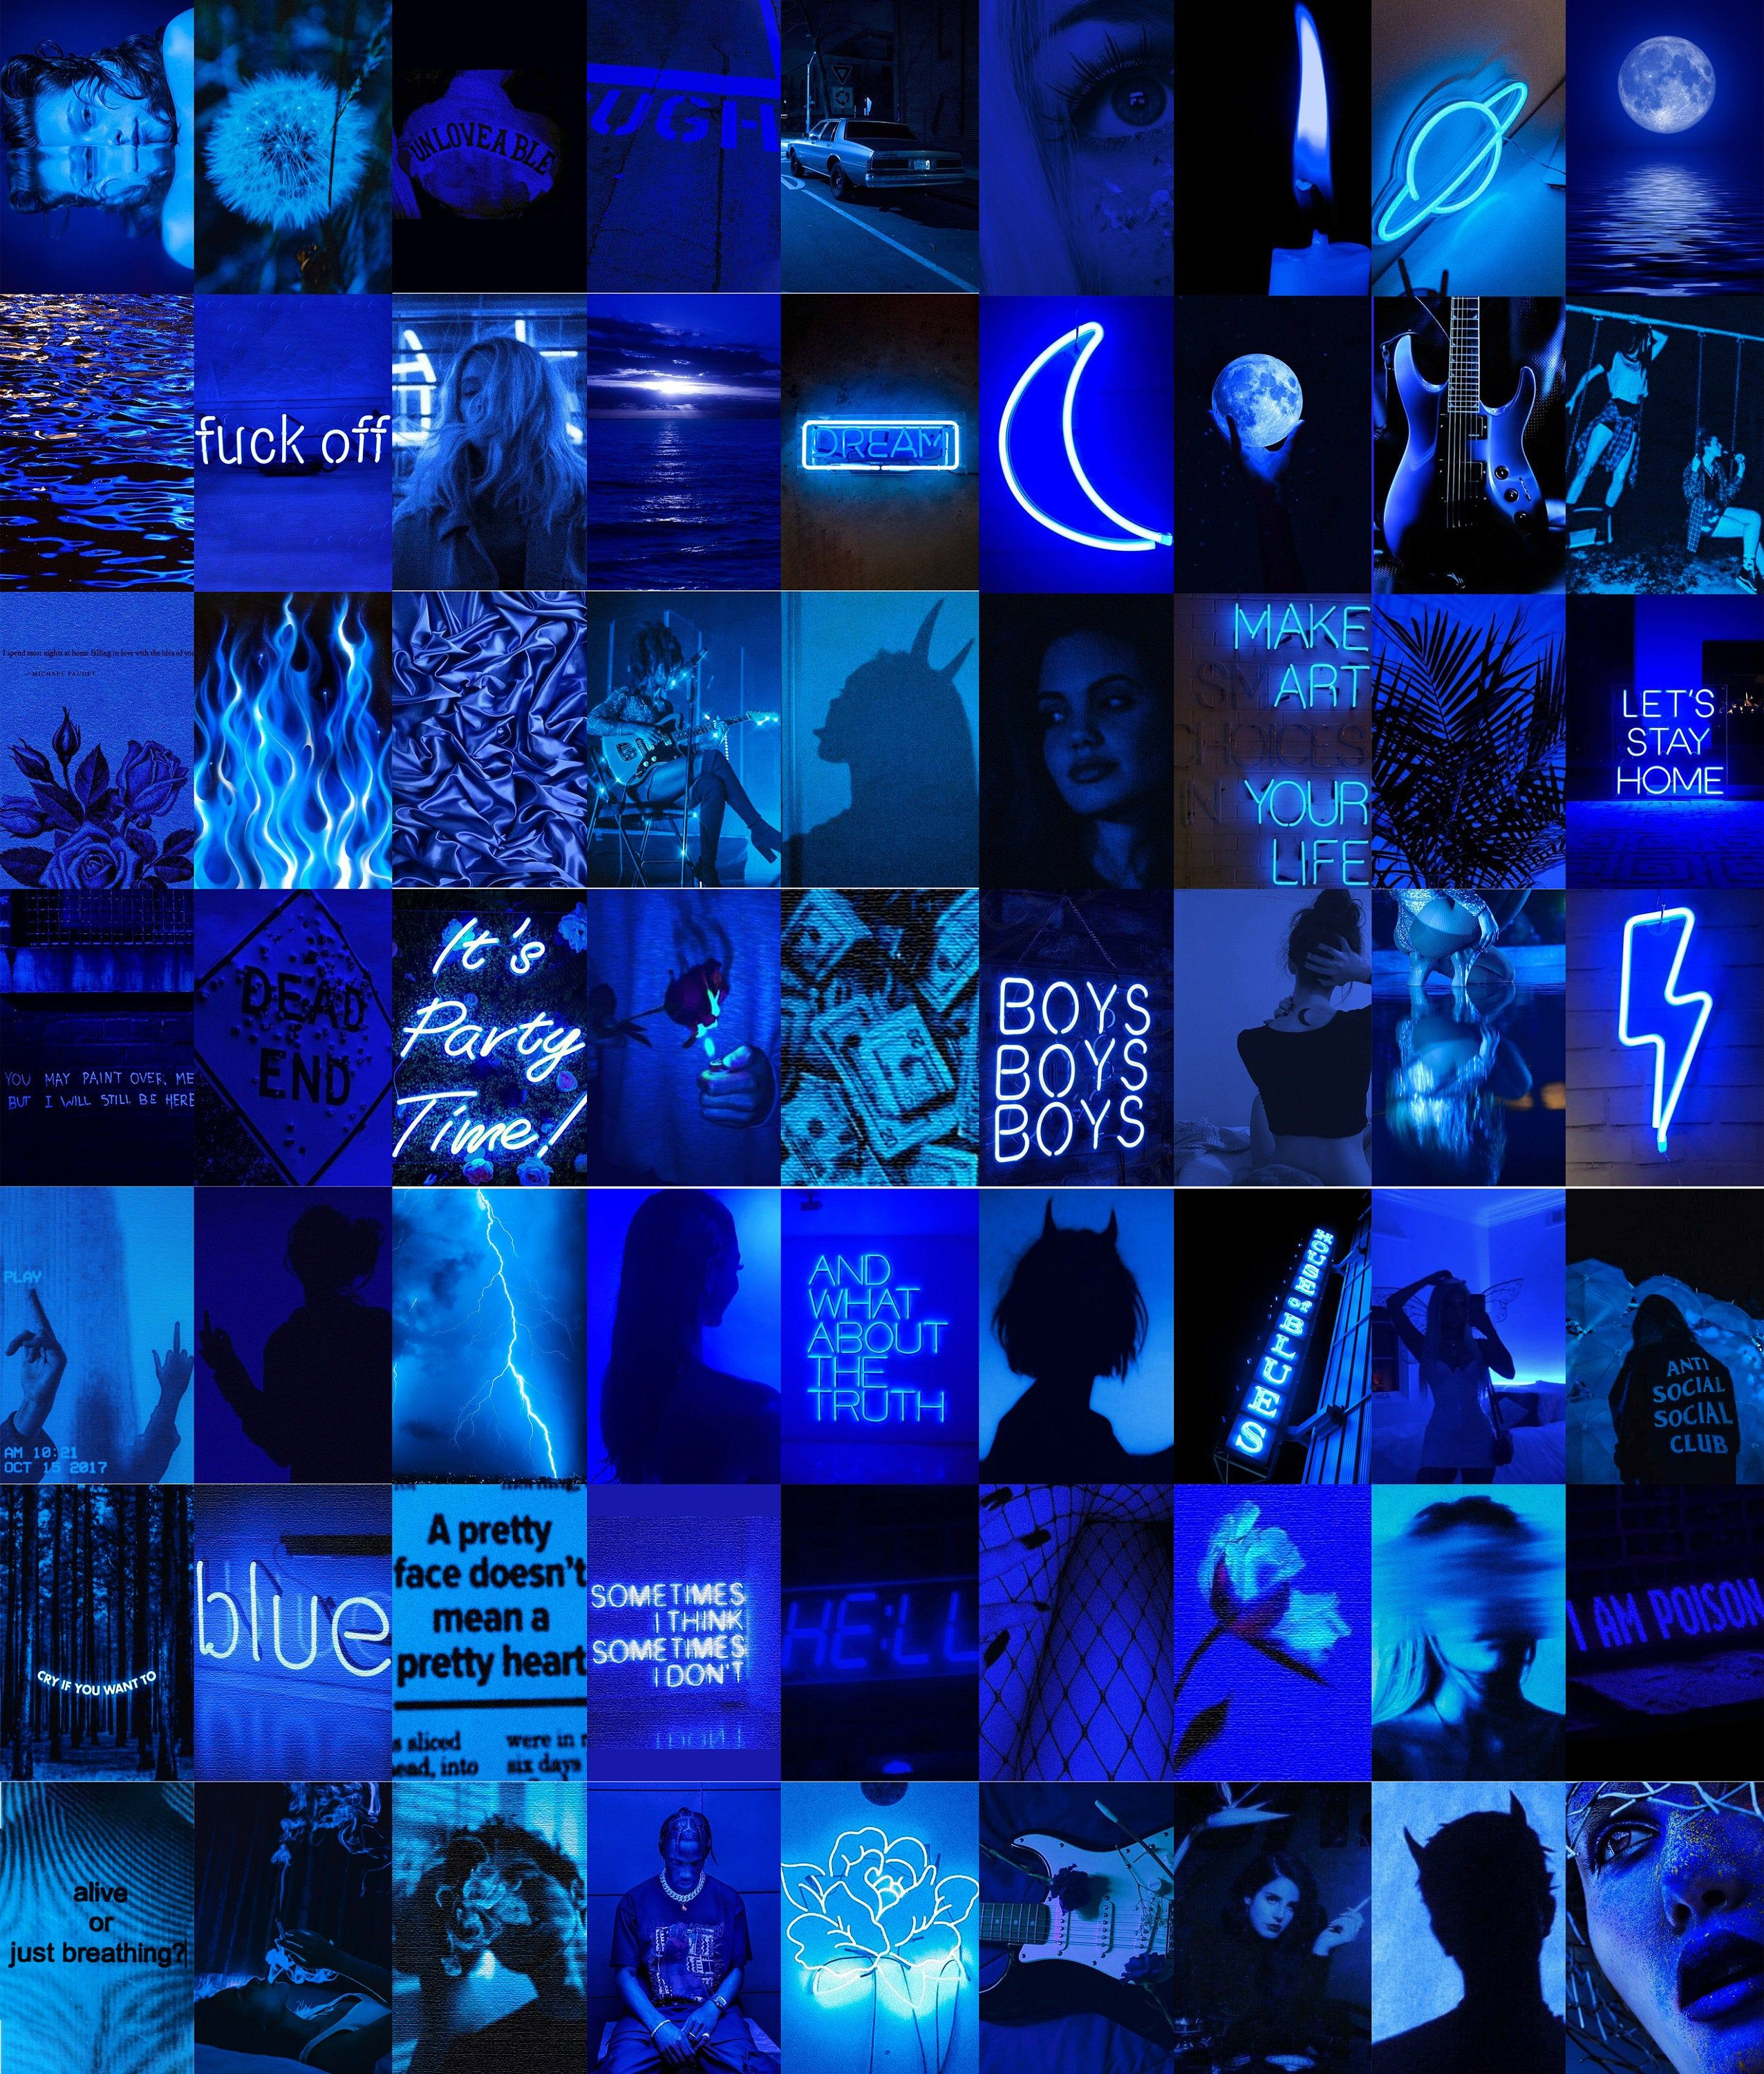 Neon Blue Wall Collage Kit, Blue Digital Wall Art, Grunge Blue Aesthetic Collage - 63Pcs Digital